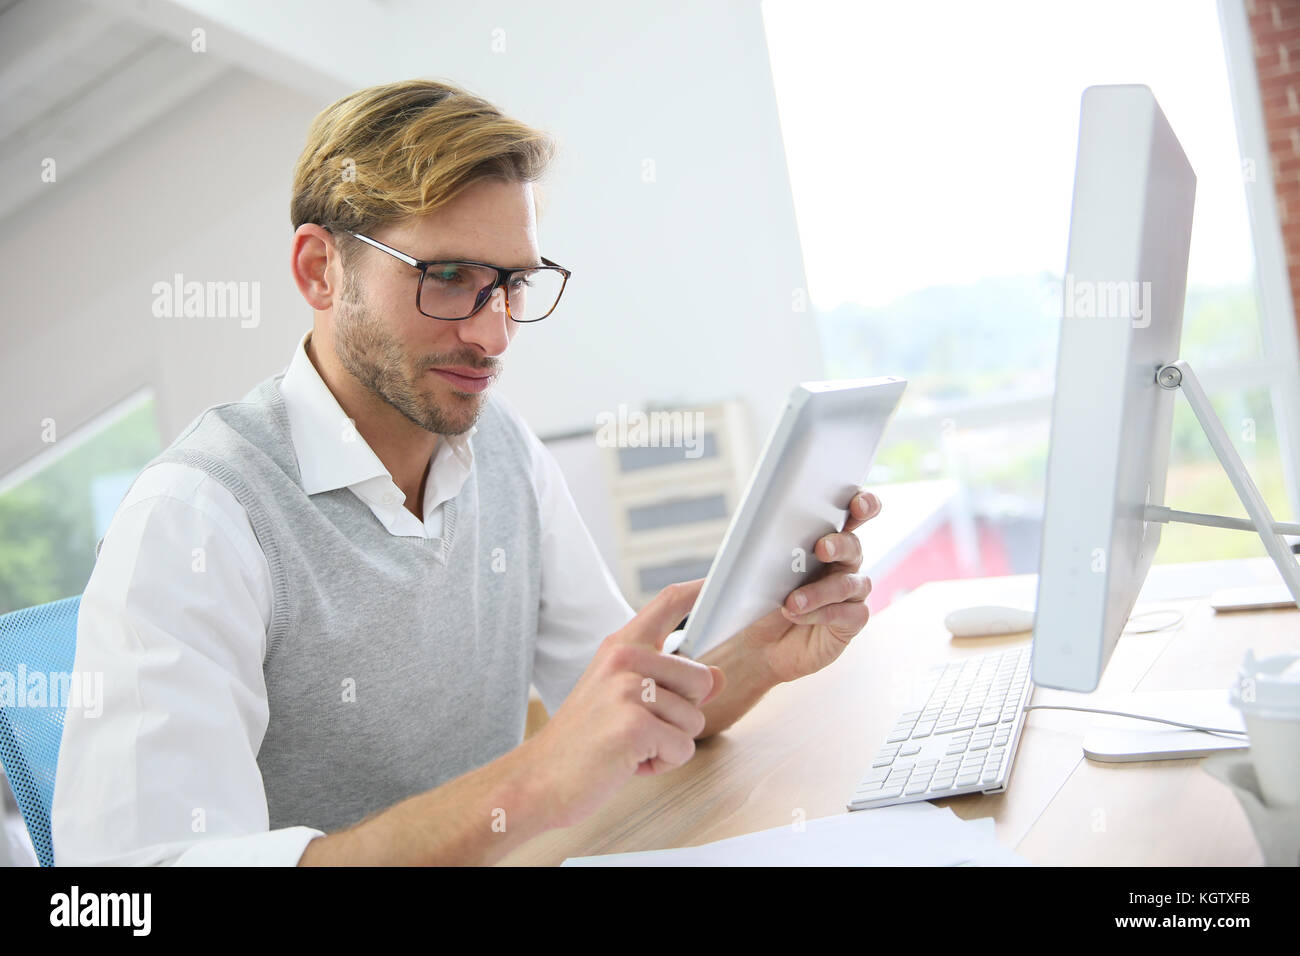 Man in office working on digital tablet, wearing eyeglasses - Stock Image